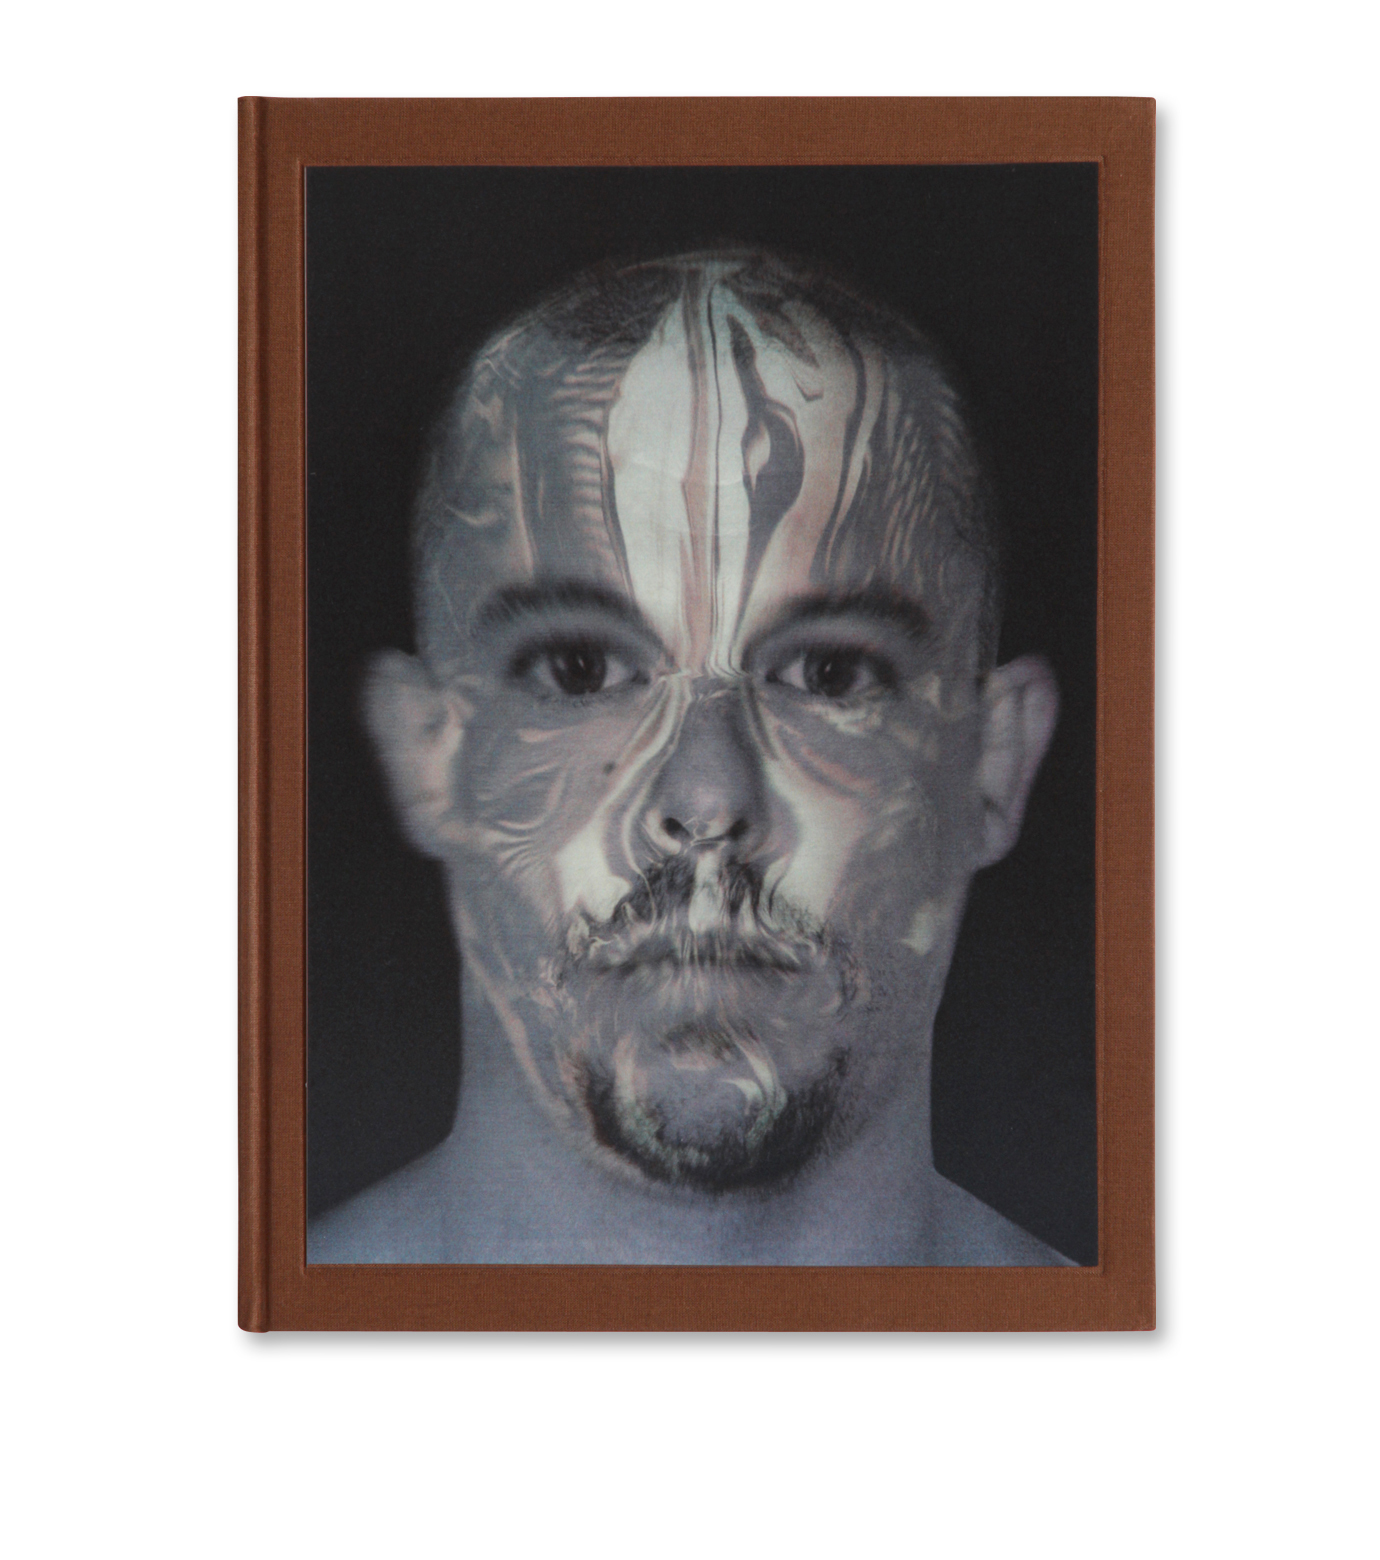 ArtBook(アートブック)のAlexander McQueen: Savage Beauty-SILVER(インテリア/OTHER-GOODS/interior/OTHER-GOODS)-300-16978-2-1 拡大詳細画像1